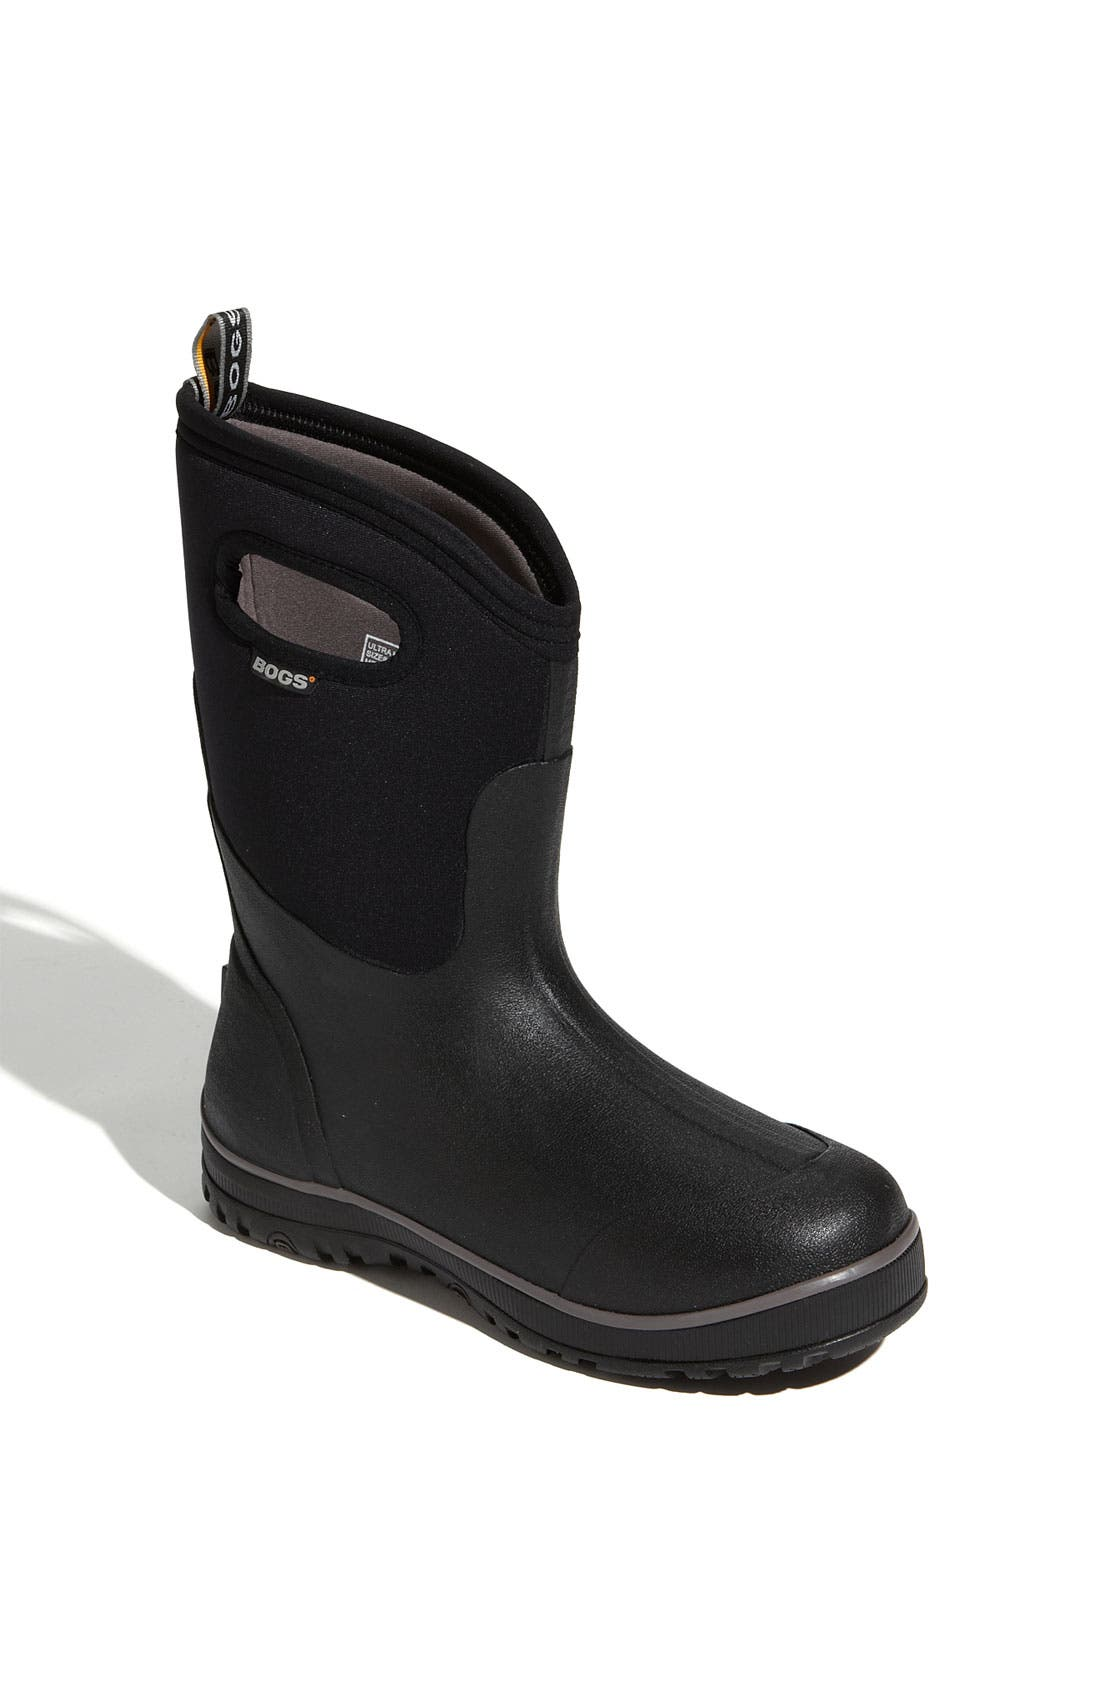 Alternate Image 1 Selected - Bogs 'Classic Ultra' Mid High Rain Boot   (Men)